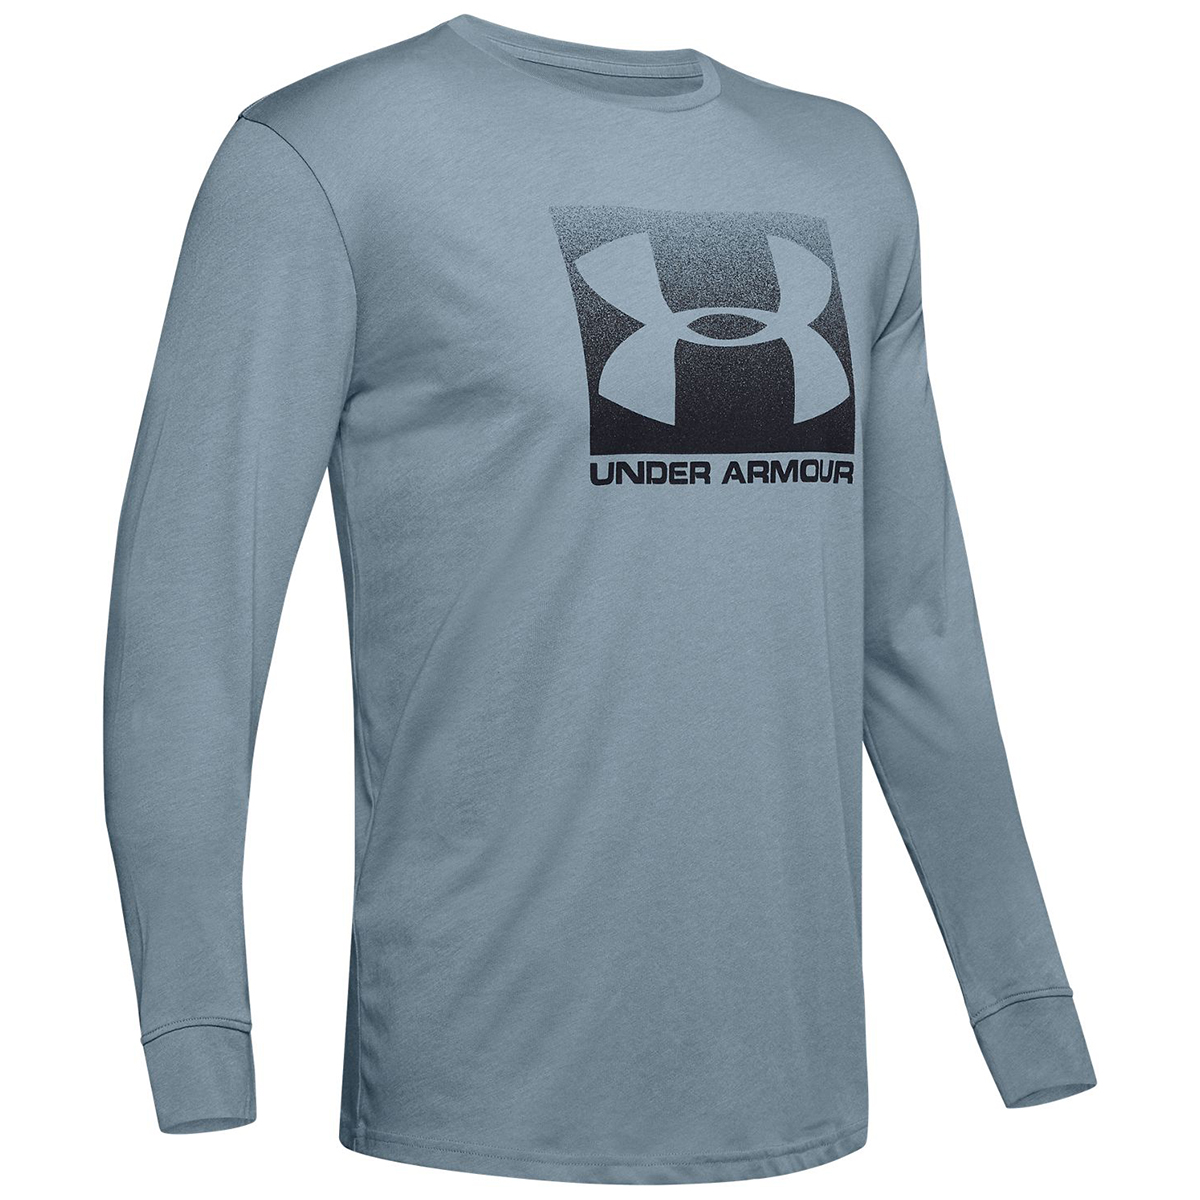 Under Armour Men's  Ua Sportstyle Boxed Long-Sleeve Tee - Black, S